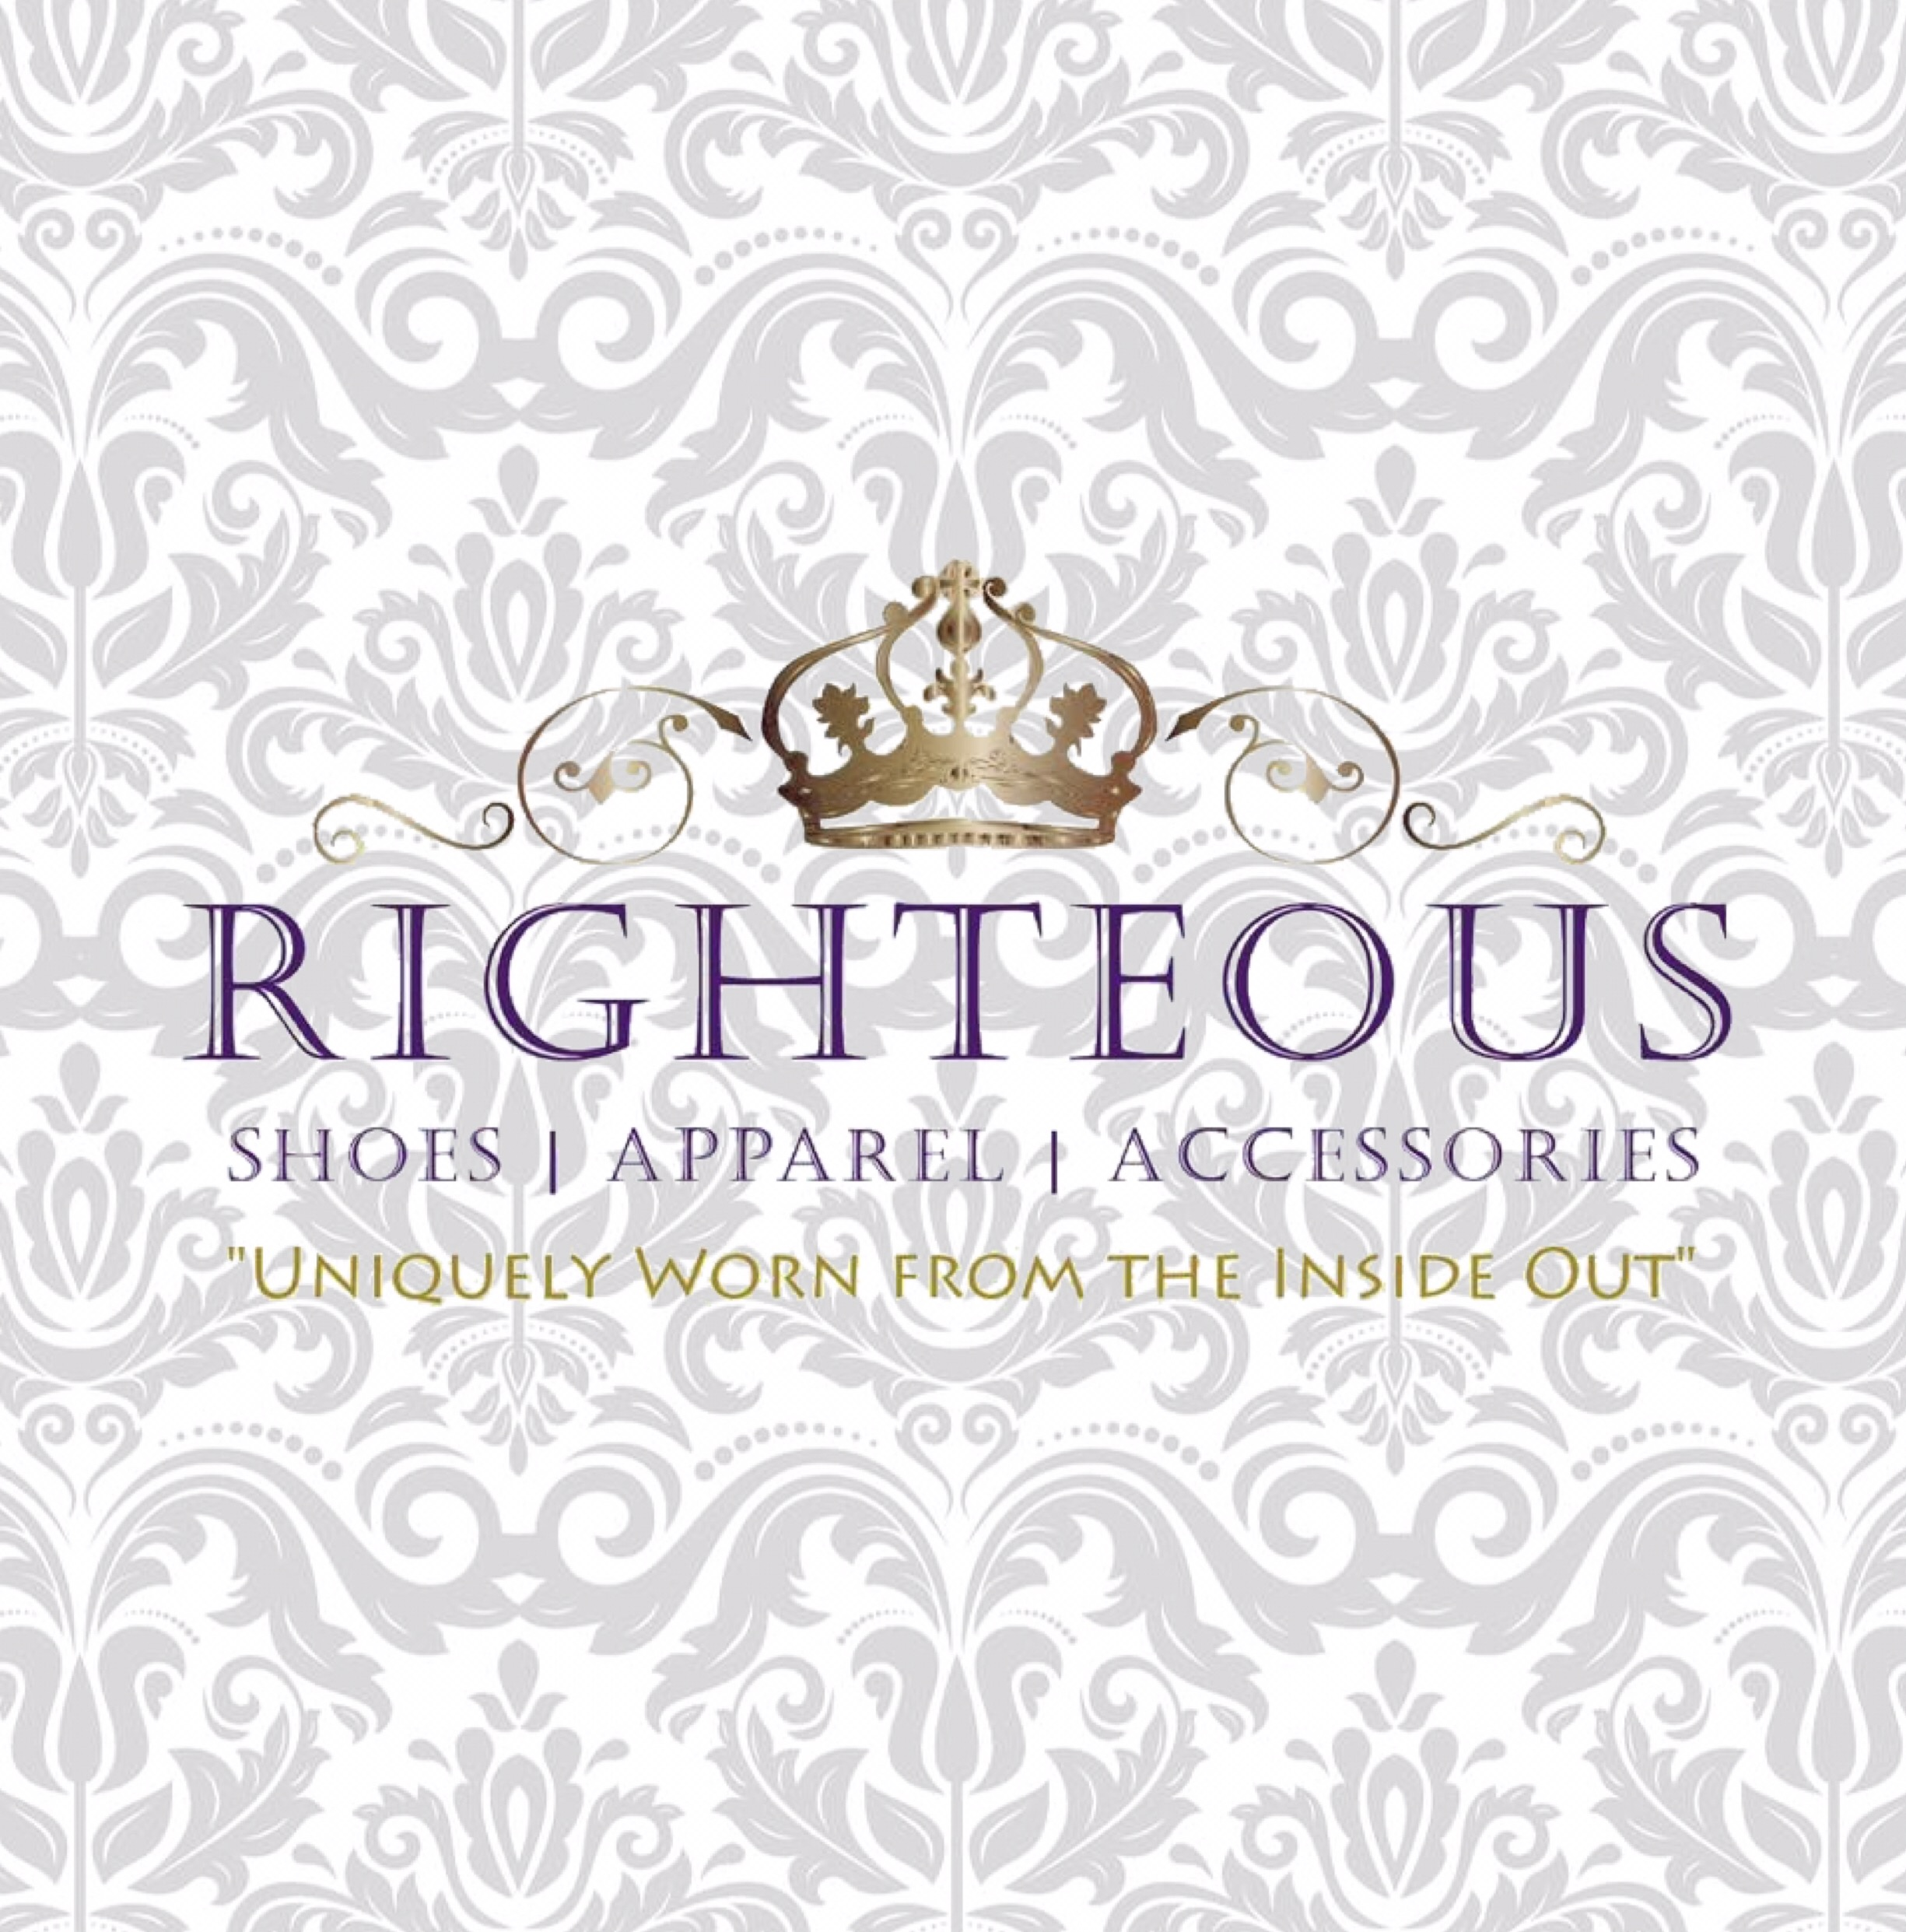 Righteous | Plus size clothing boutique in Alabama